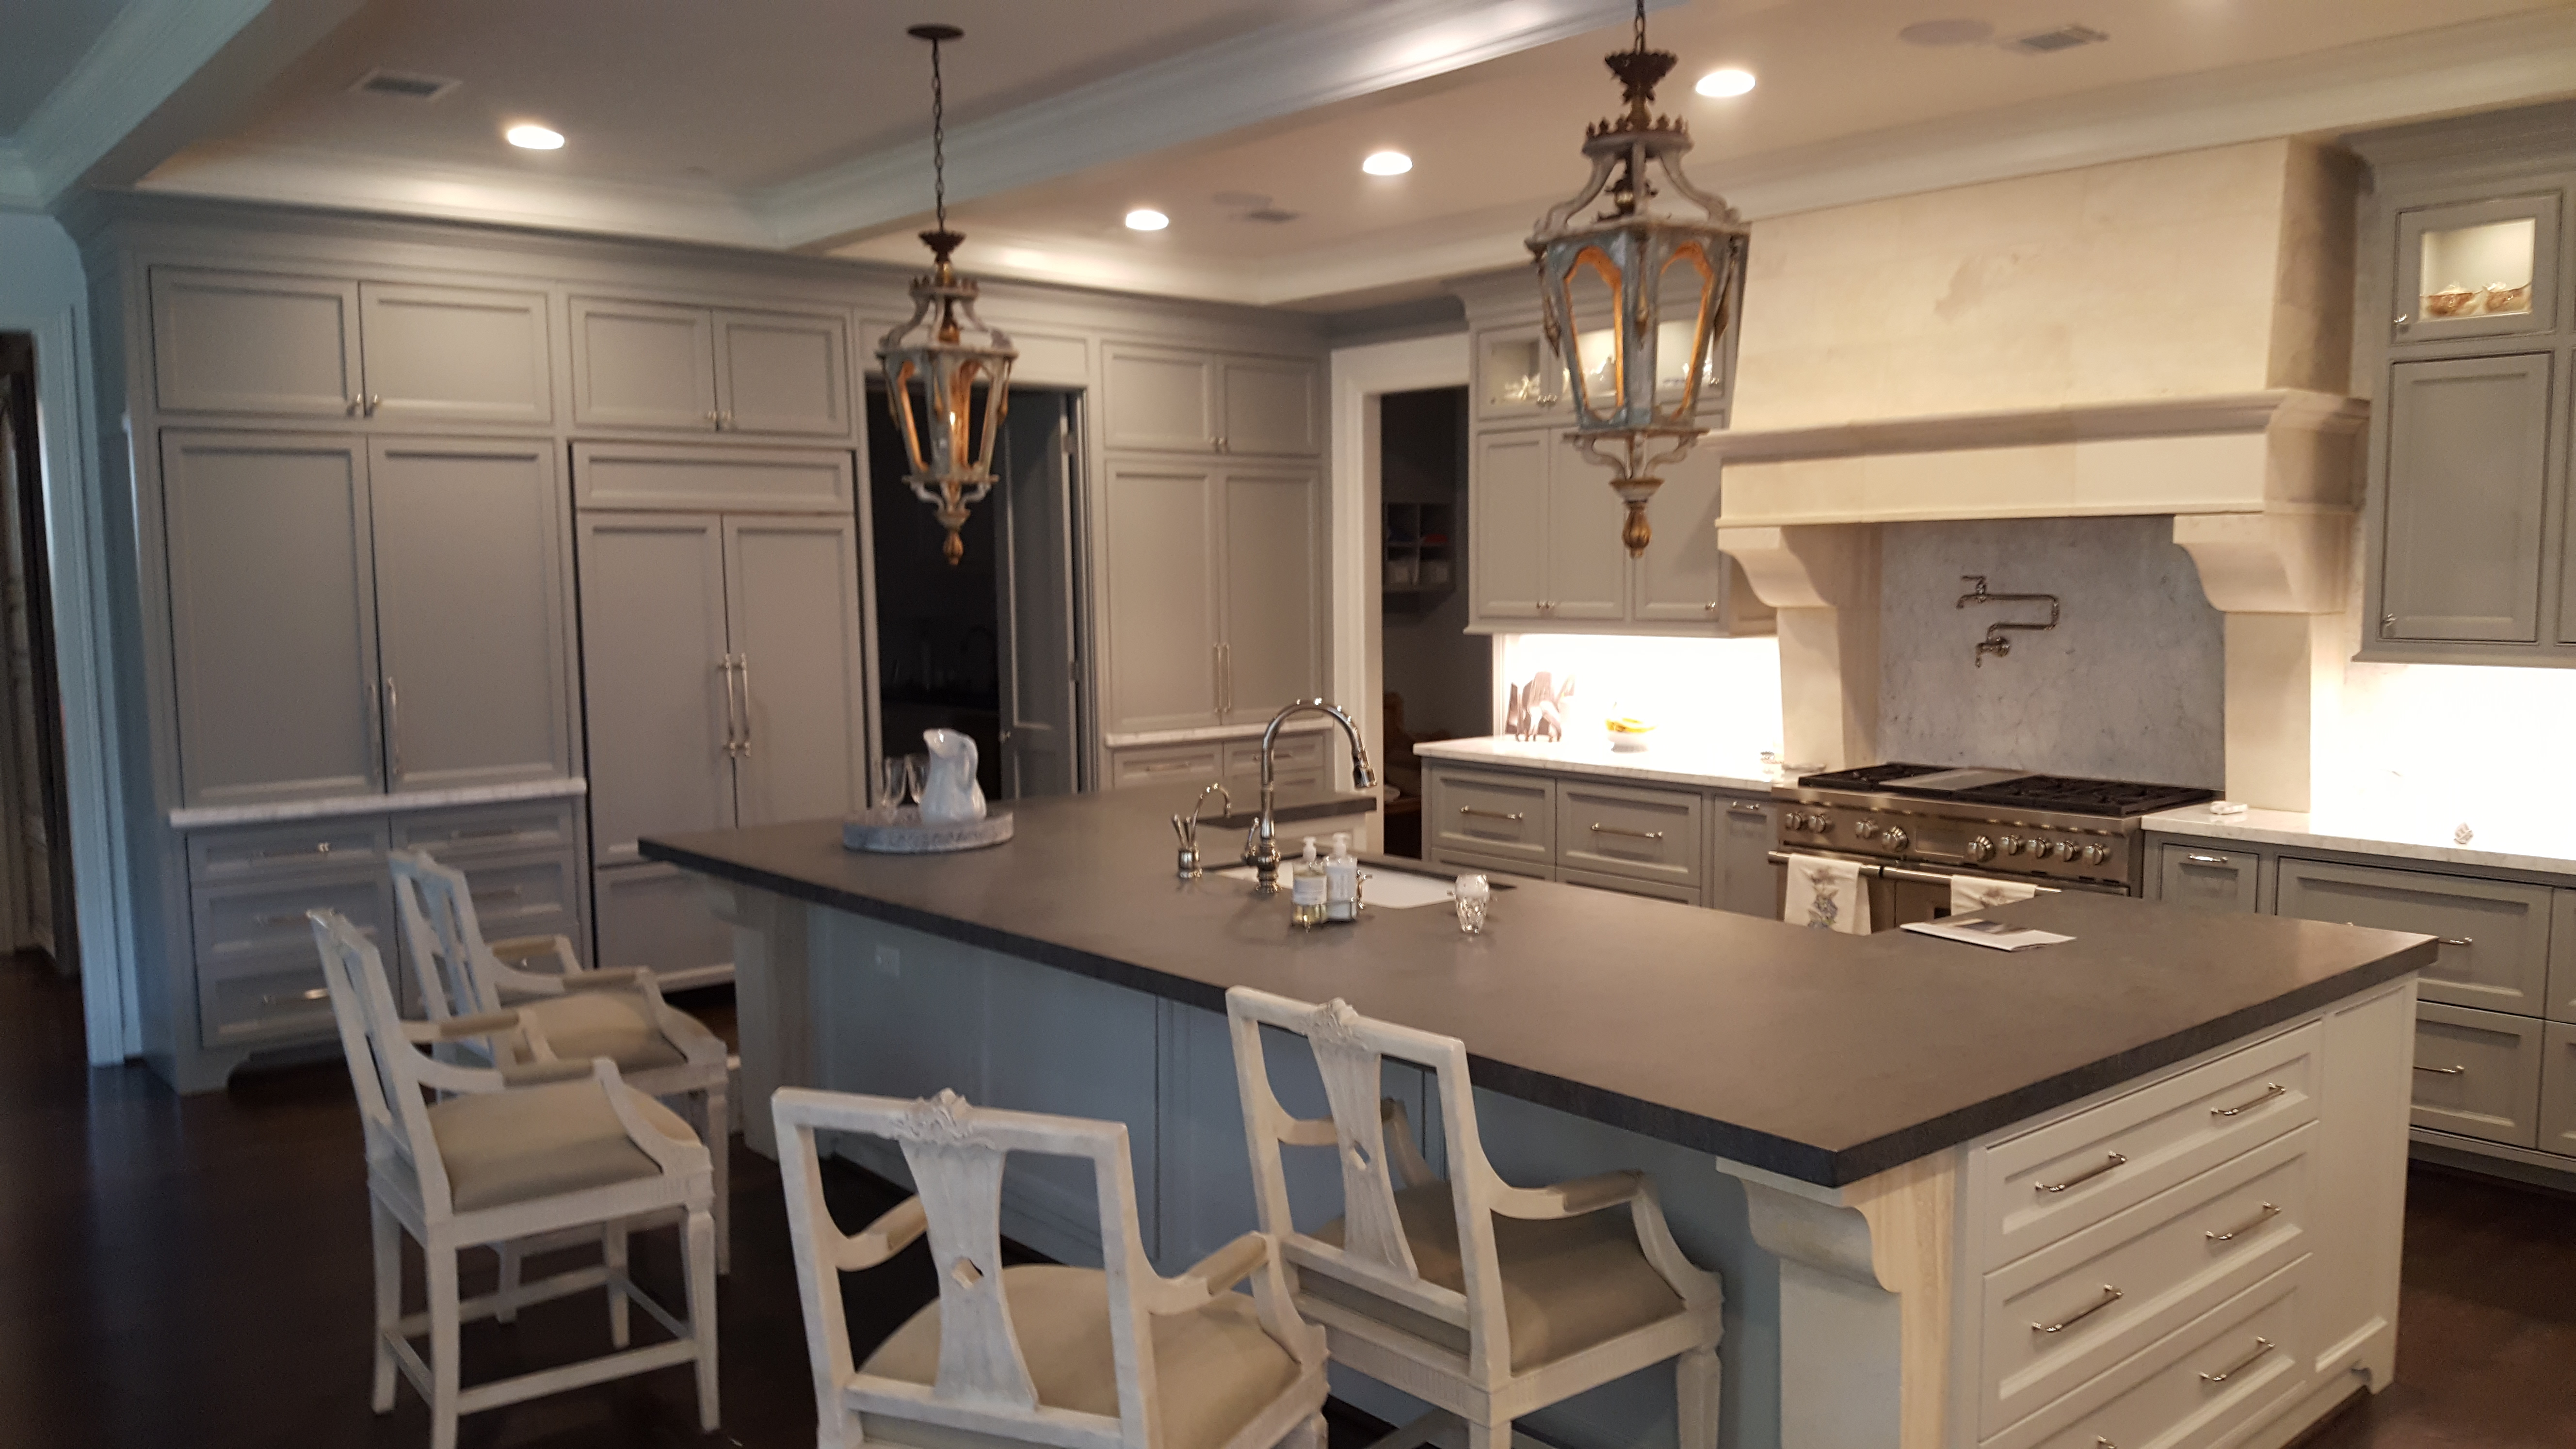 R L Hawkins Inc The Best Custom Cabinetry Built In S